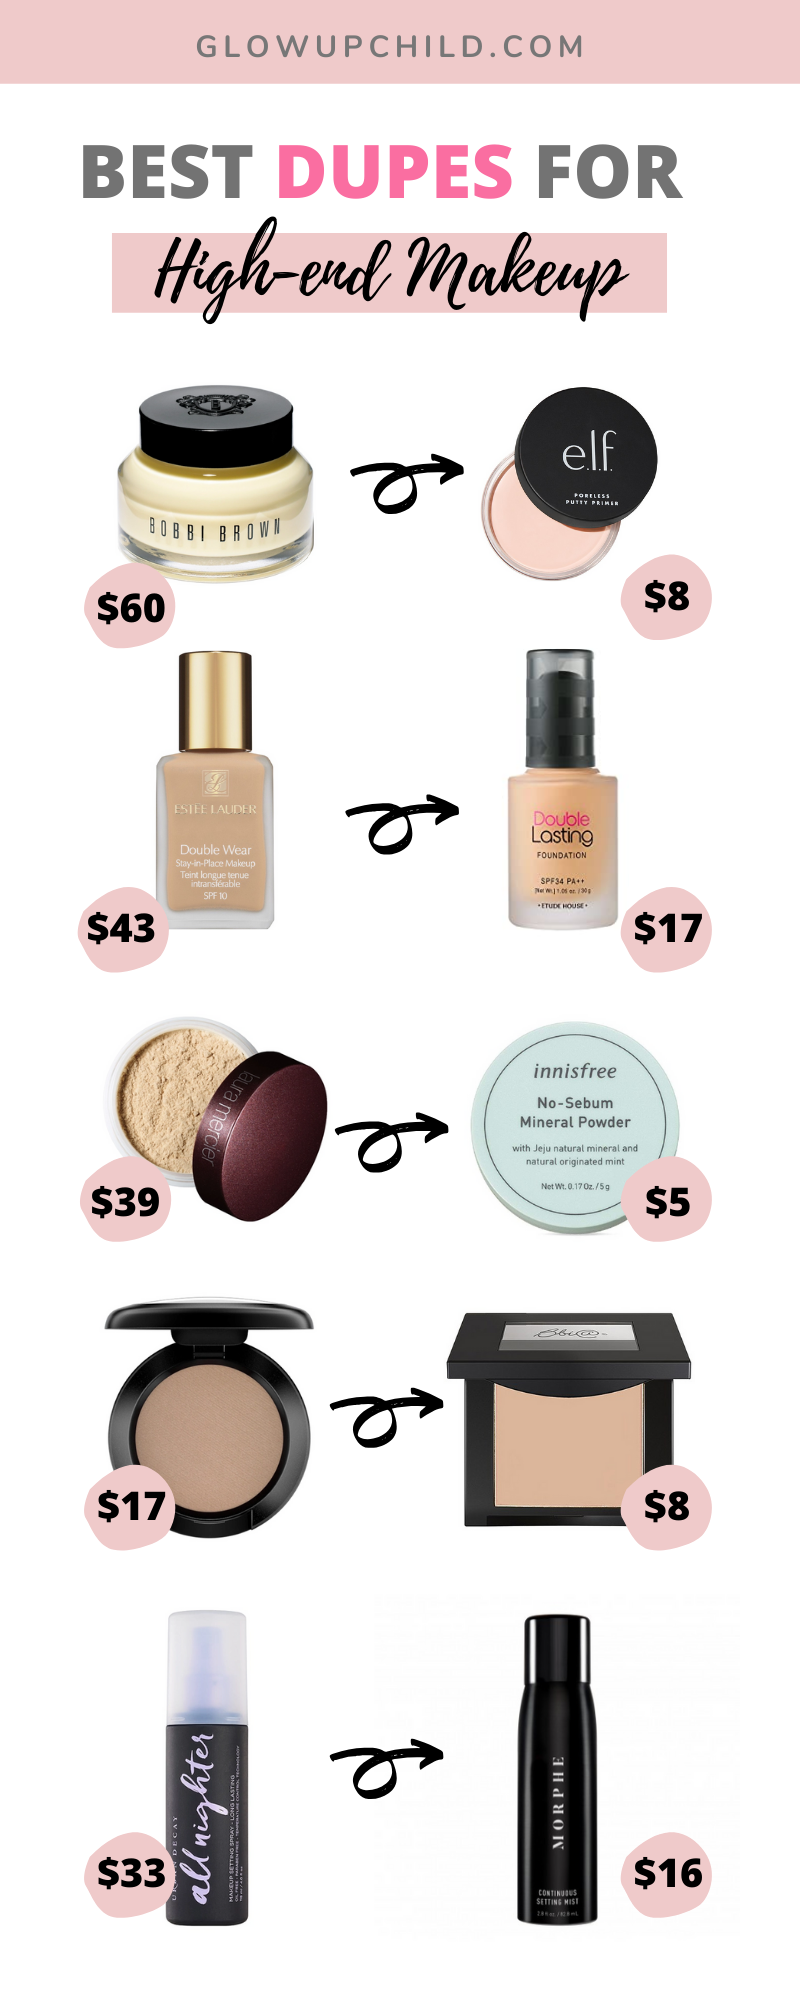 Top 5 Dupes For The Best High End Makeup Products Glowupchild